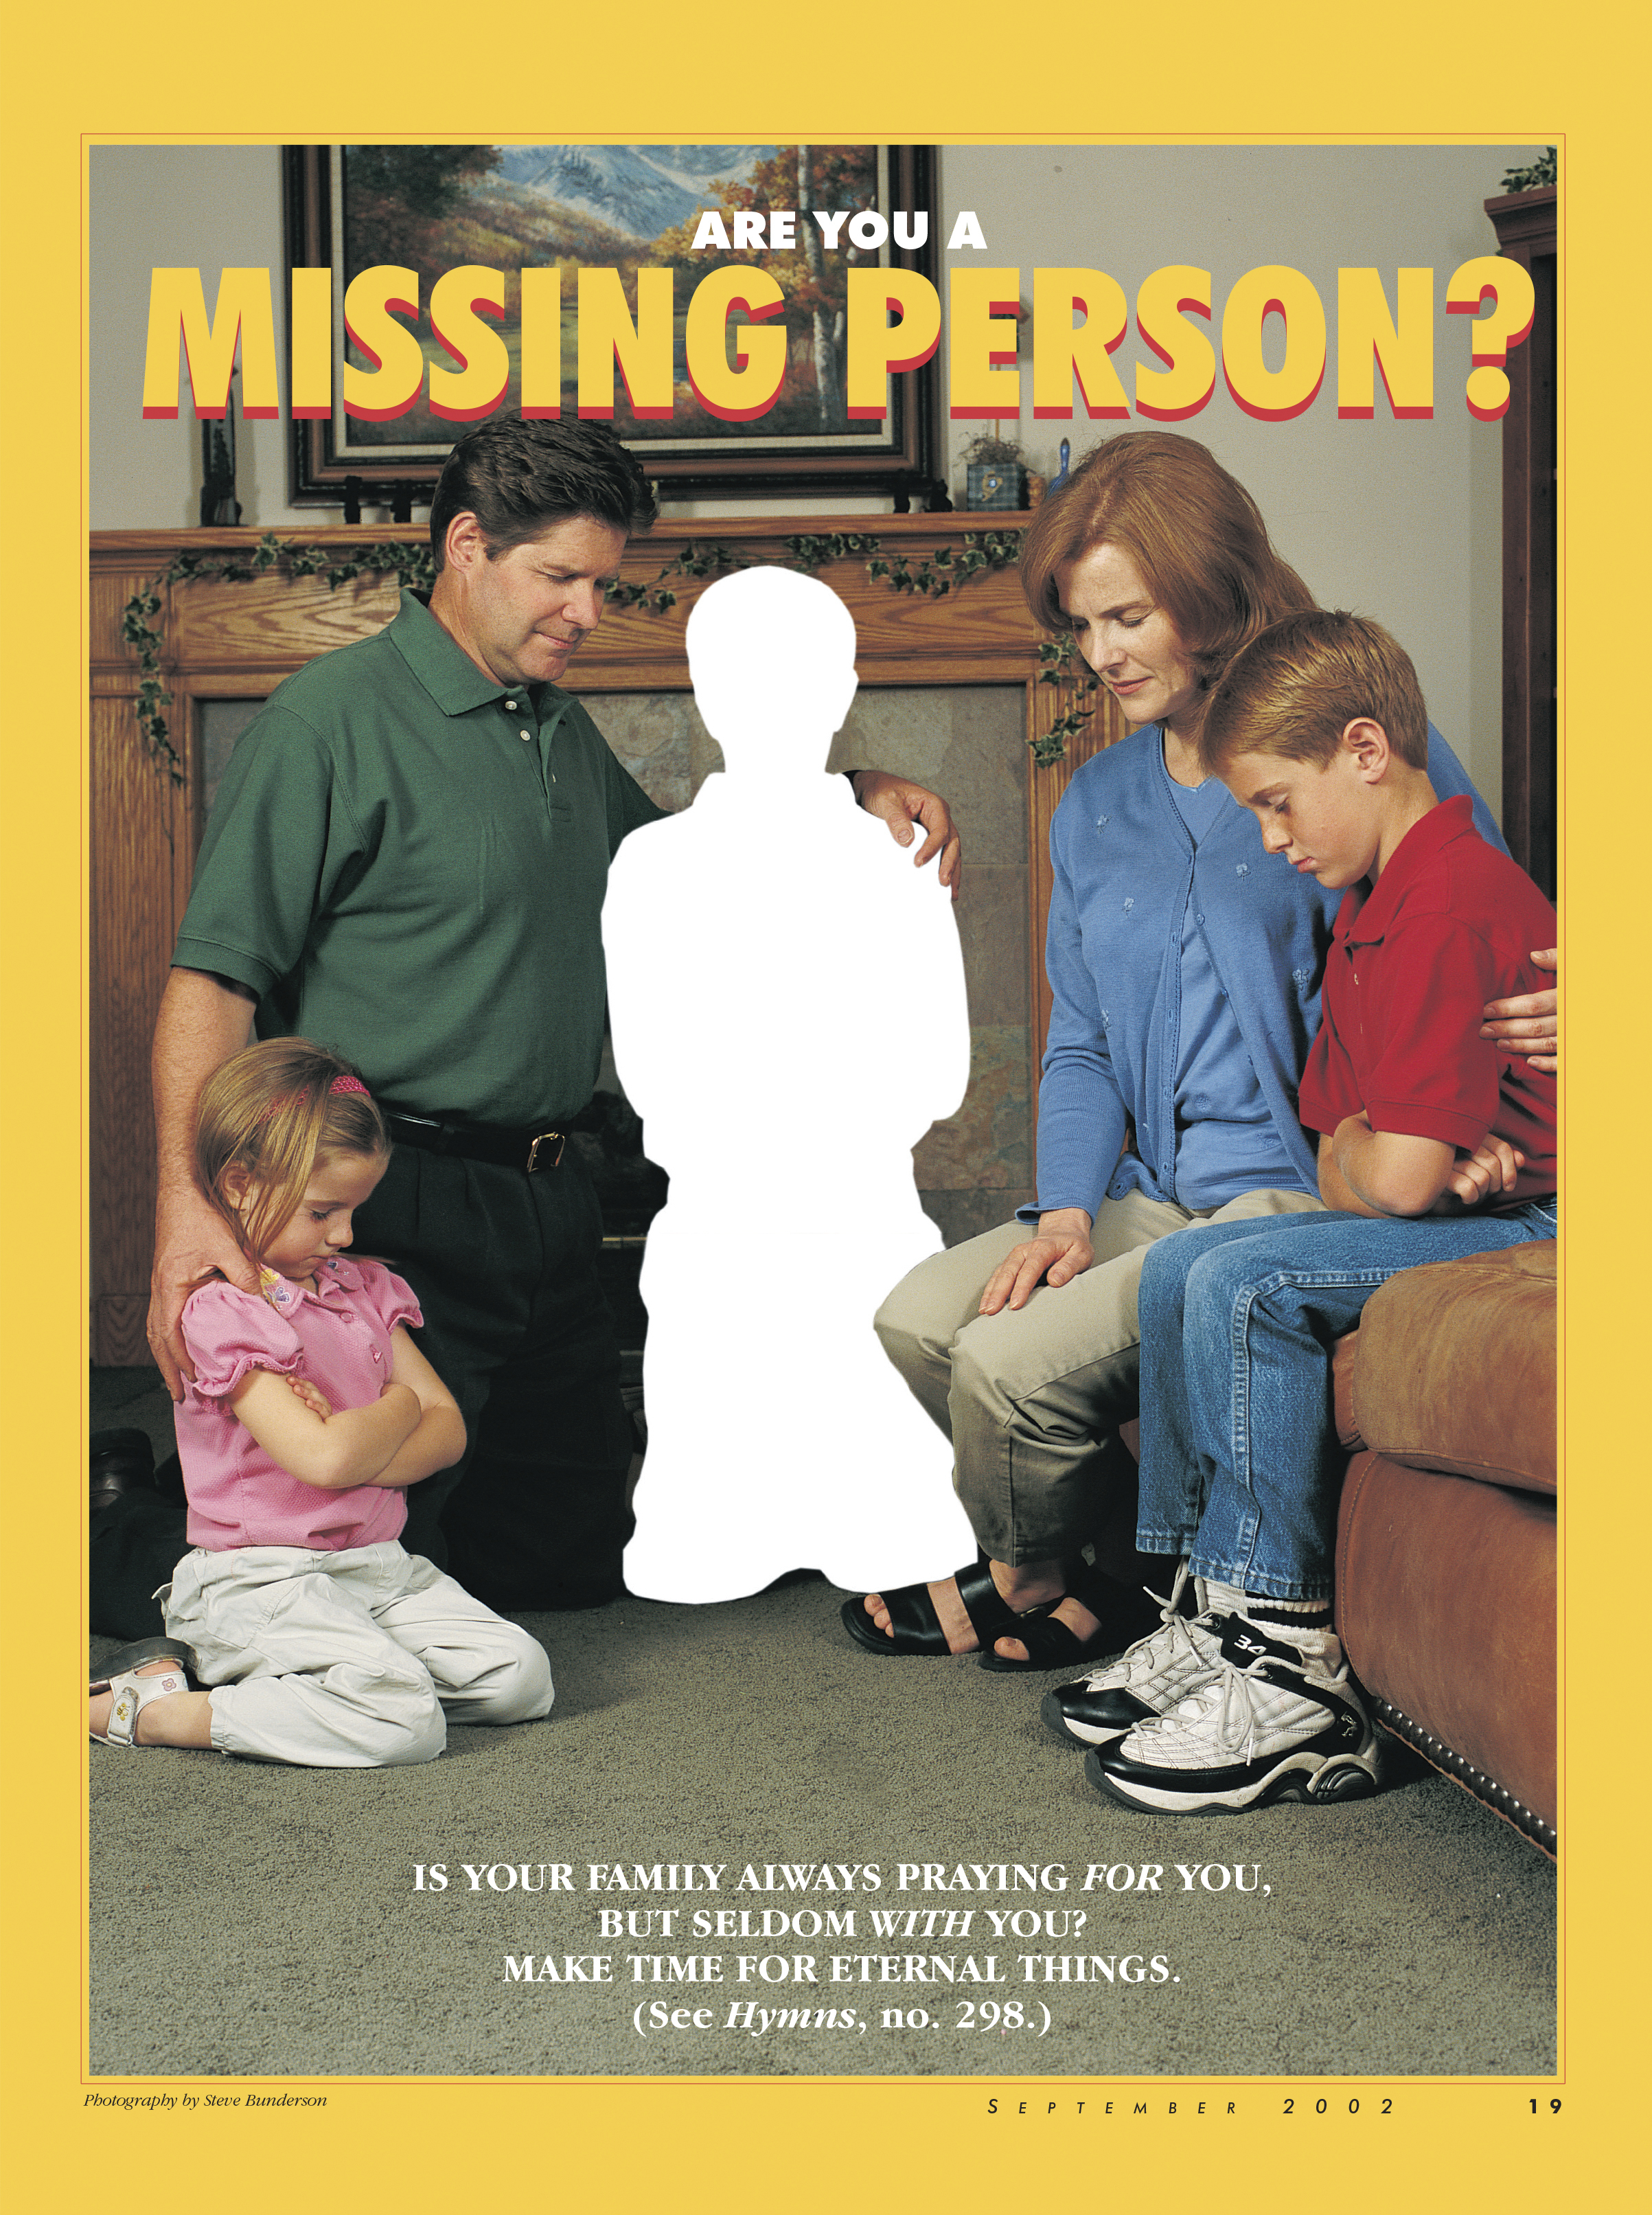 Are You a Missing Person? Is your family always praying for you, but seldom with you? Make time for eternal things. (See Hymns, no. 298.) Sept. 2002 © undefined ipCode 1.